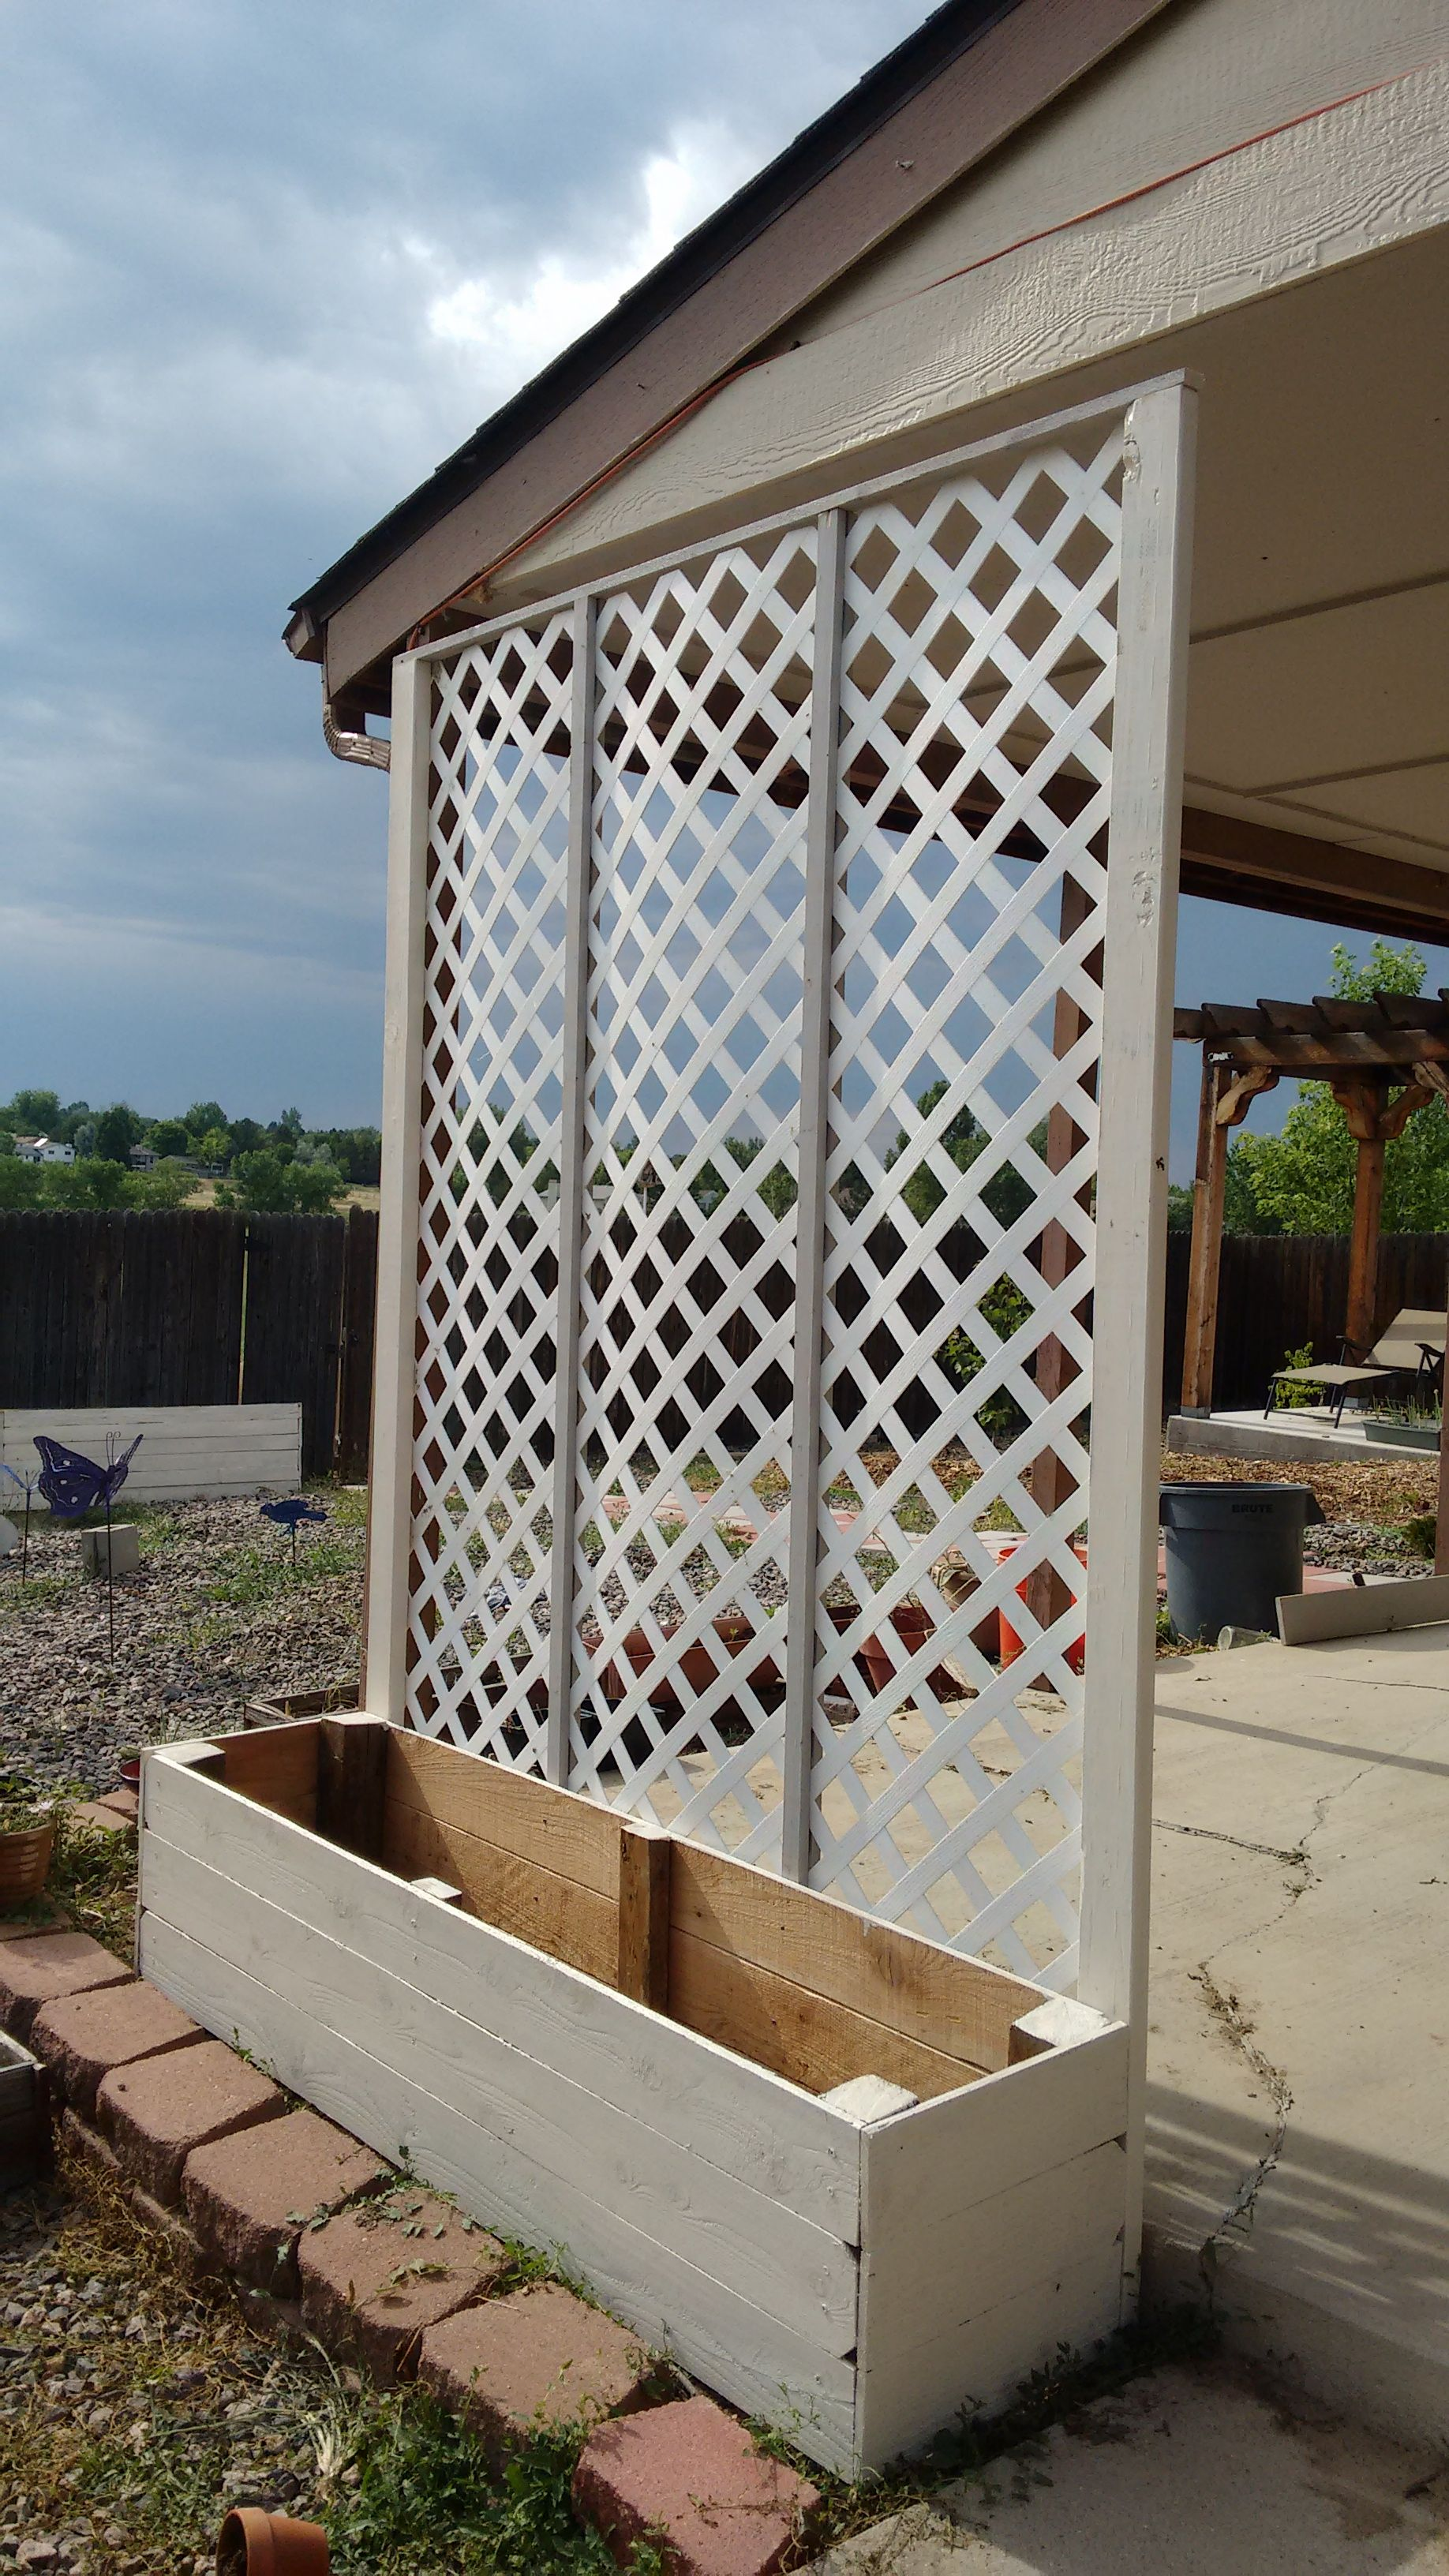 Lattice privacy screen planter my projects pinterest for Privacy planters for decks